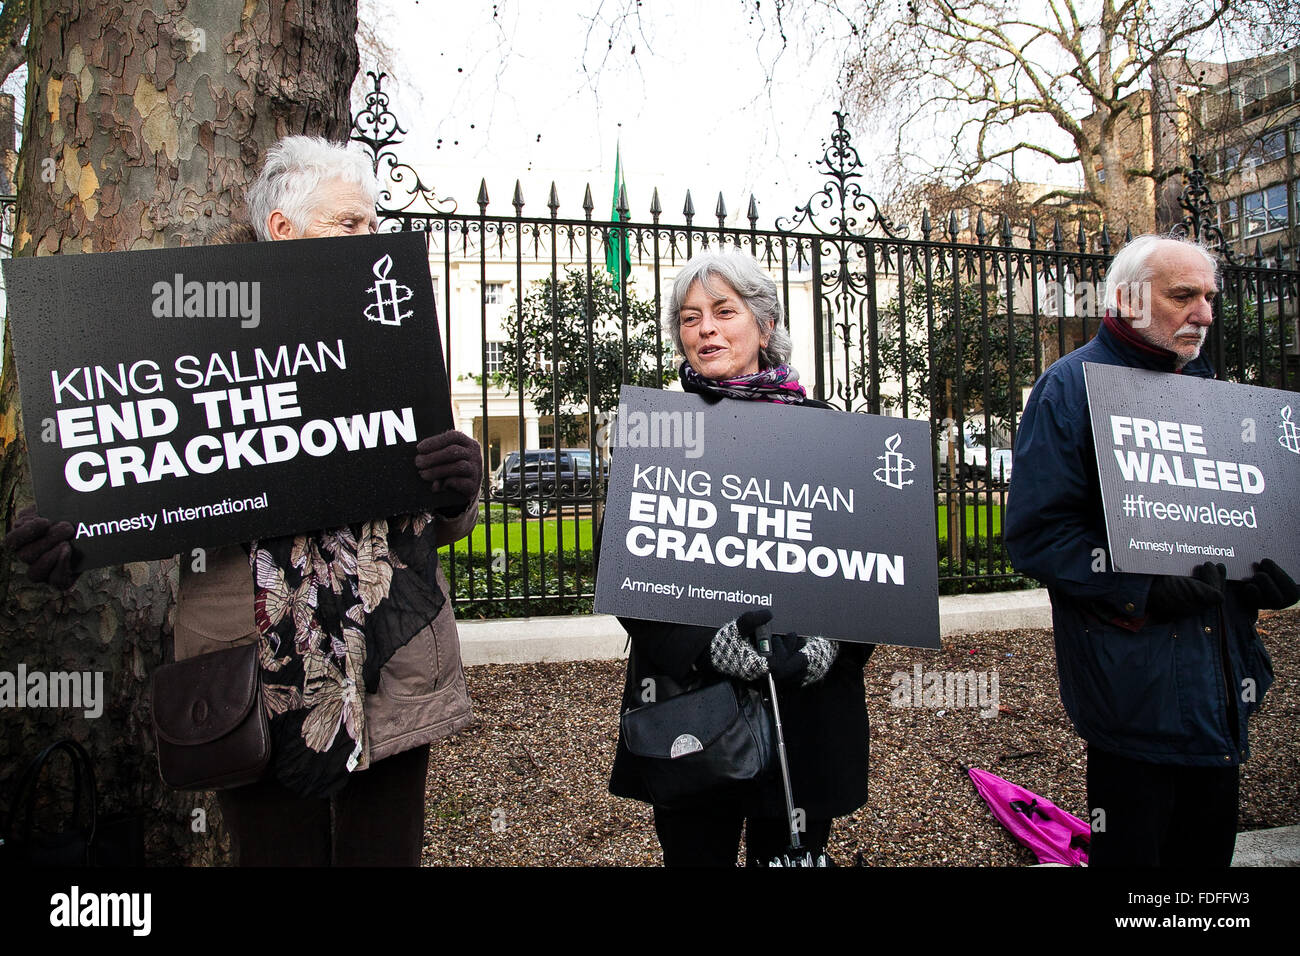 Amnesty International held a protest for the jailed free speech activist Raif Badawi outside the Saudi Arabia Embassy - Stock Image